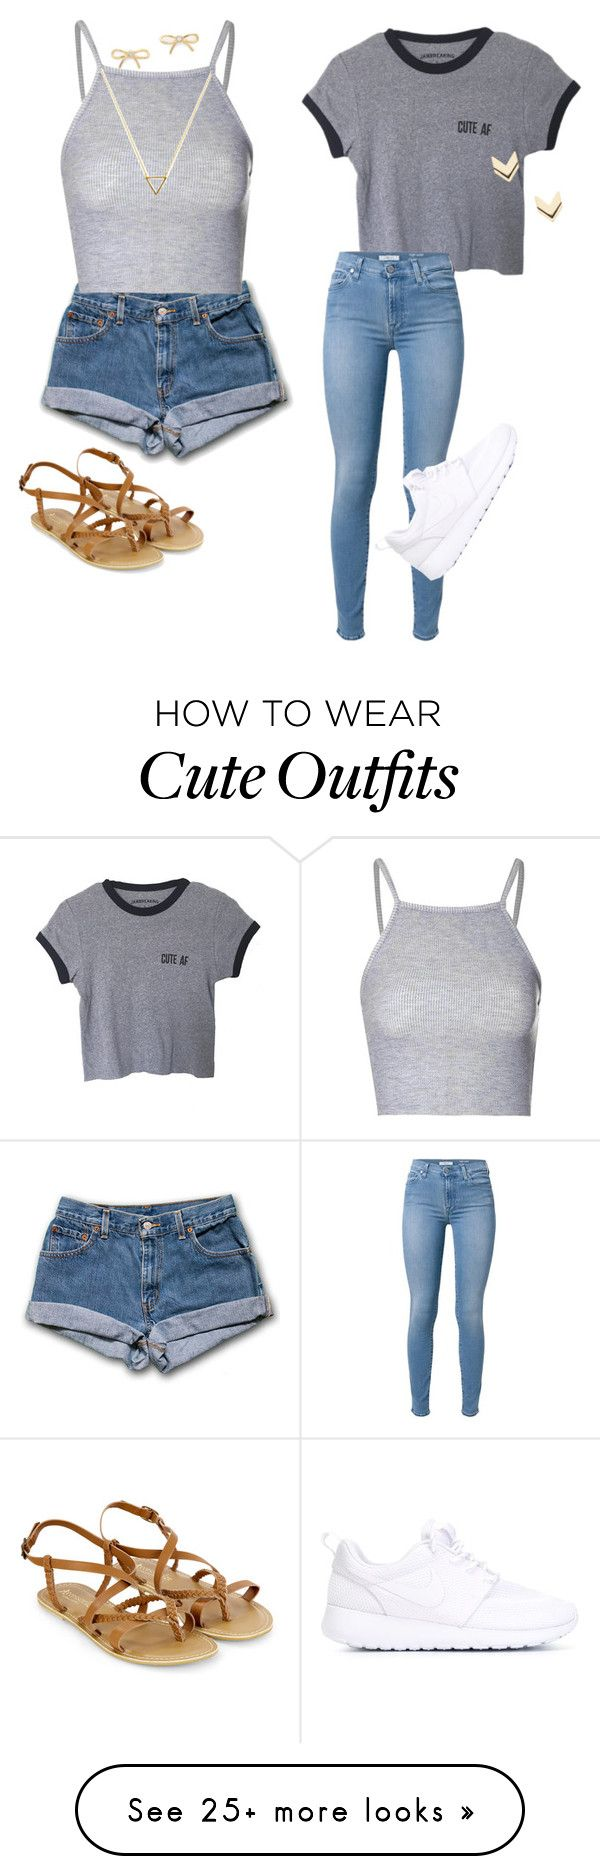 """Monday&tuesdays outfit!"" by superwomennicky on Polyvore featuring Accessorize, Glamorous, Kate Spade, Leslie Danzis, Wanderlust + Co, 7 For All Mankind and NIKE"